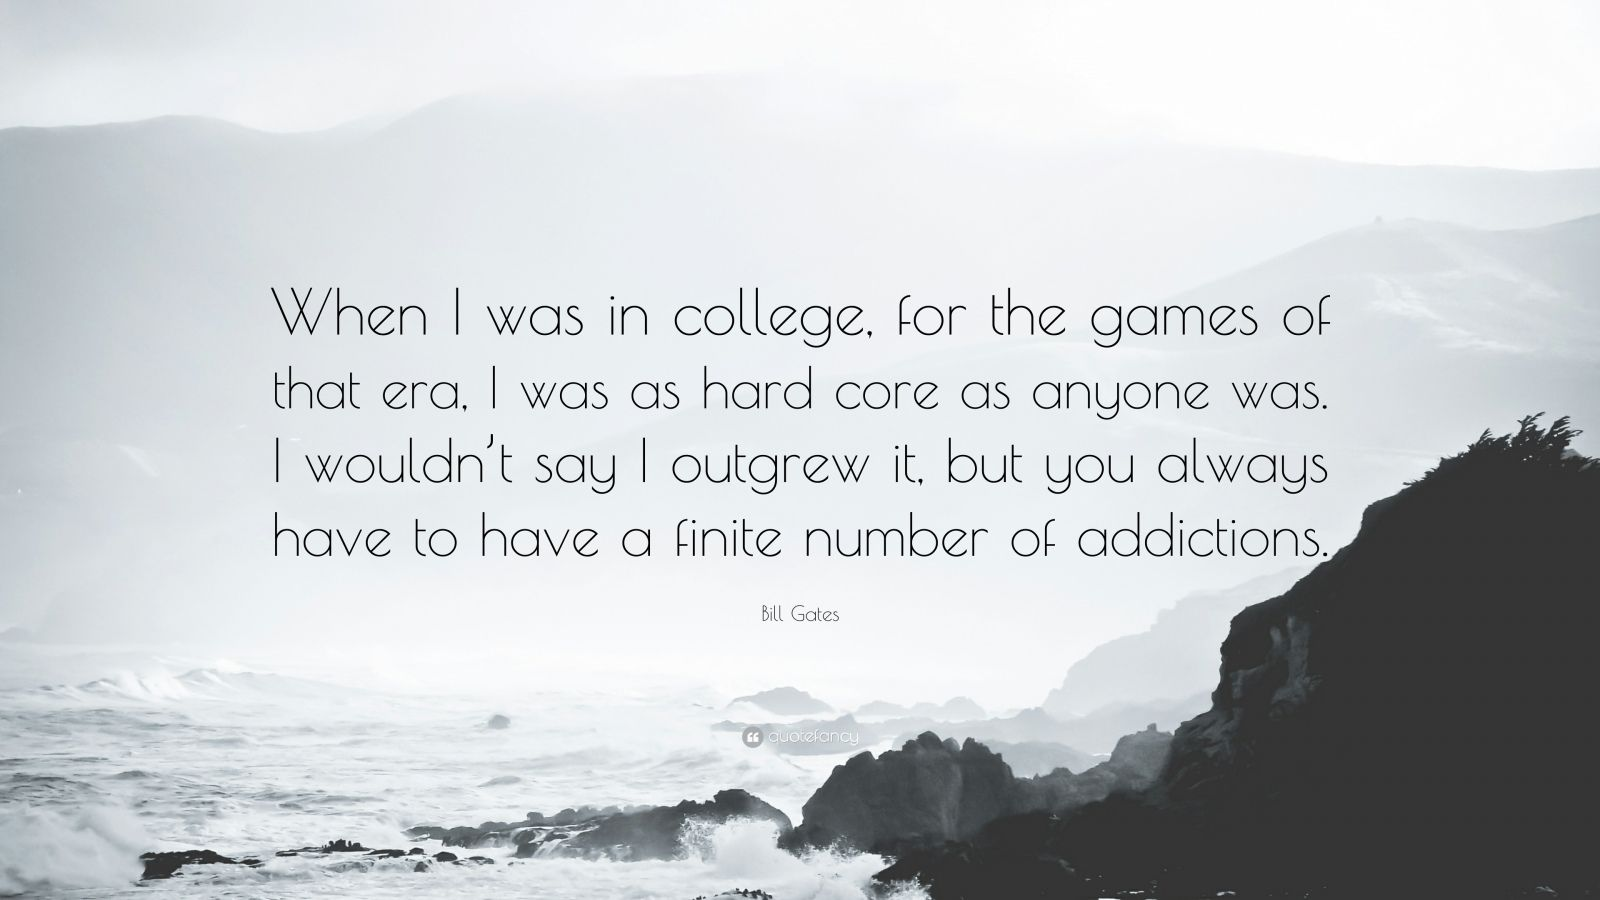 """Bill Gates Quote: """"When I was in college, for the games of that era, I was as hard core as anyone was. I wouldn't say I outgrew it, but you always have to have a finite number of addictions."""""""